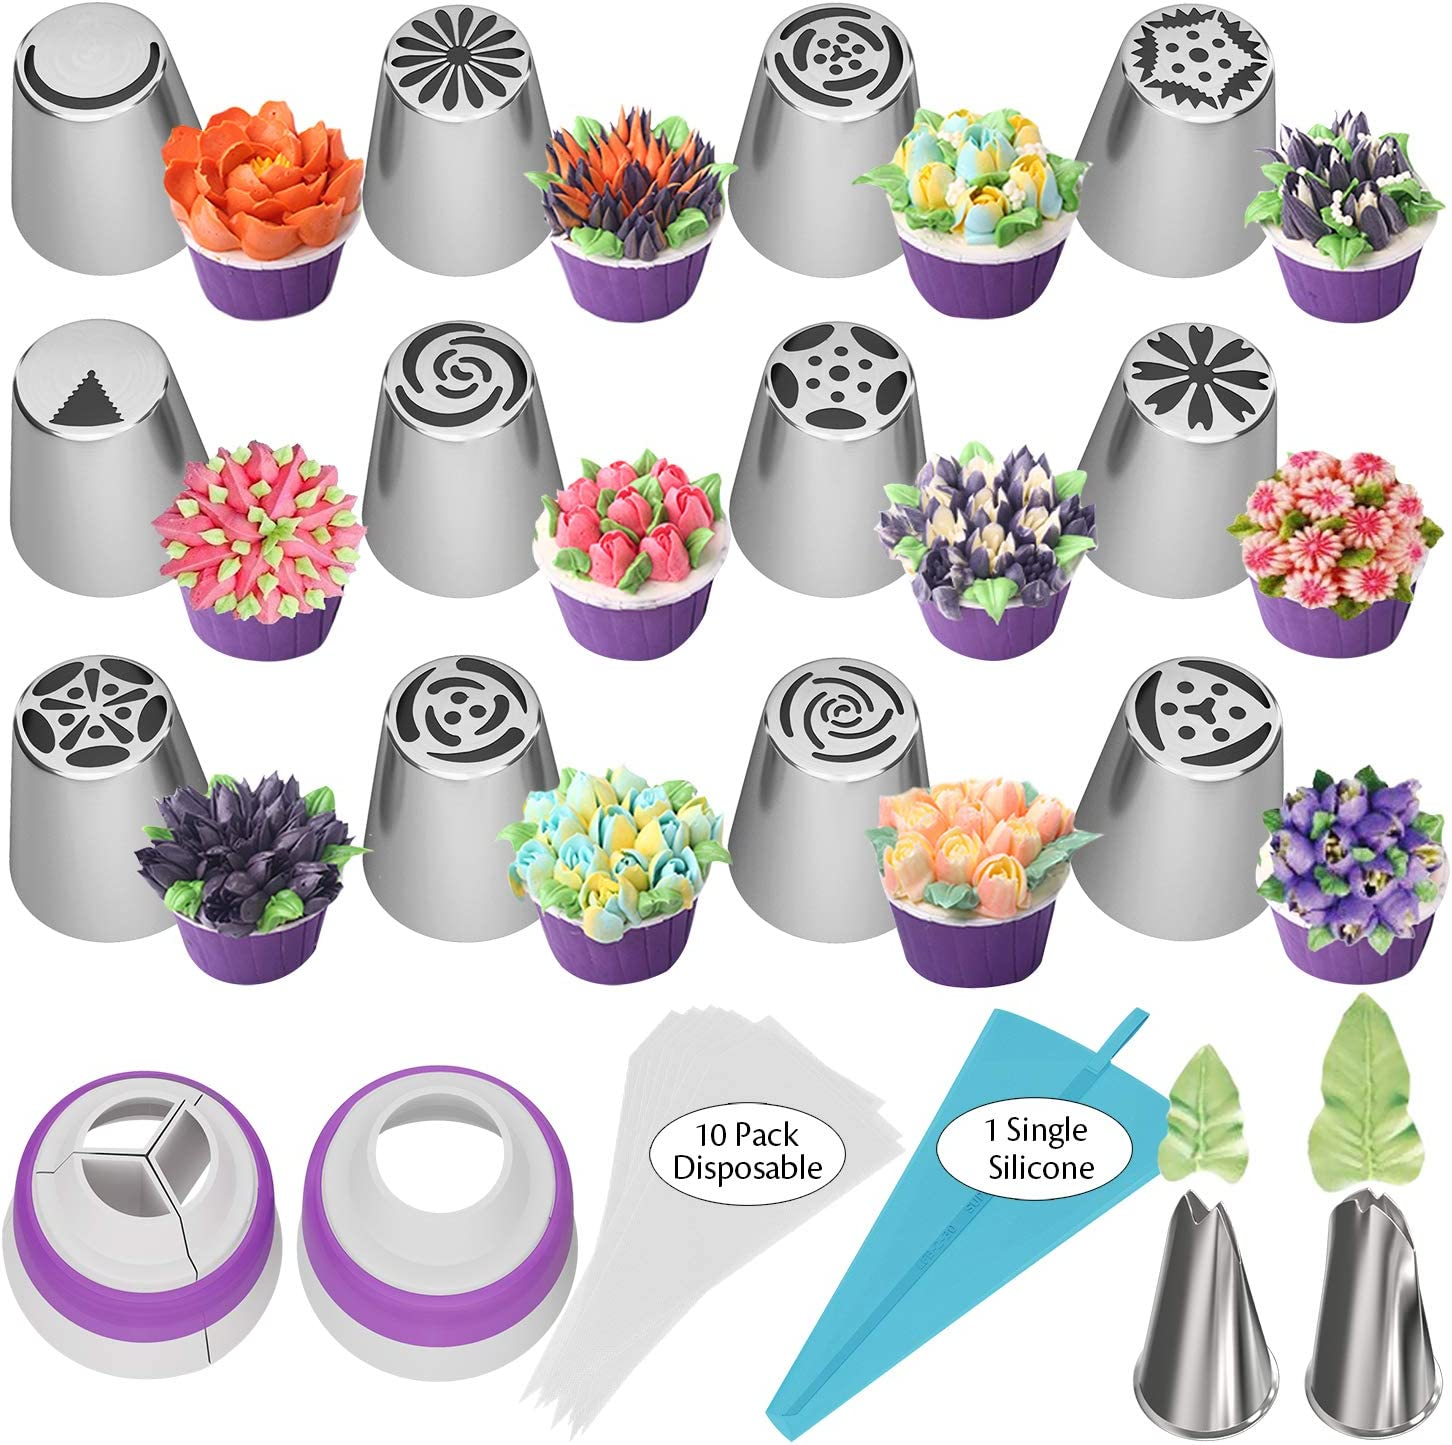 Russian Piping Tips 27pcs Baking Supplies Set Cake Decorating Tips for Cupcake Cookies Birthday Party, 12 Icing Tips 2 Leaf Piping Tips 2 Couplers 10 Pastry Baking Bags